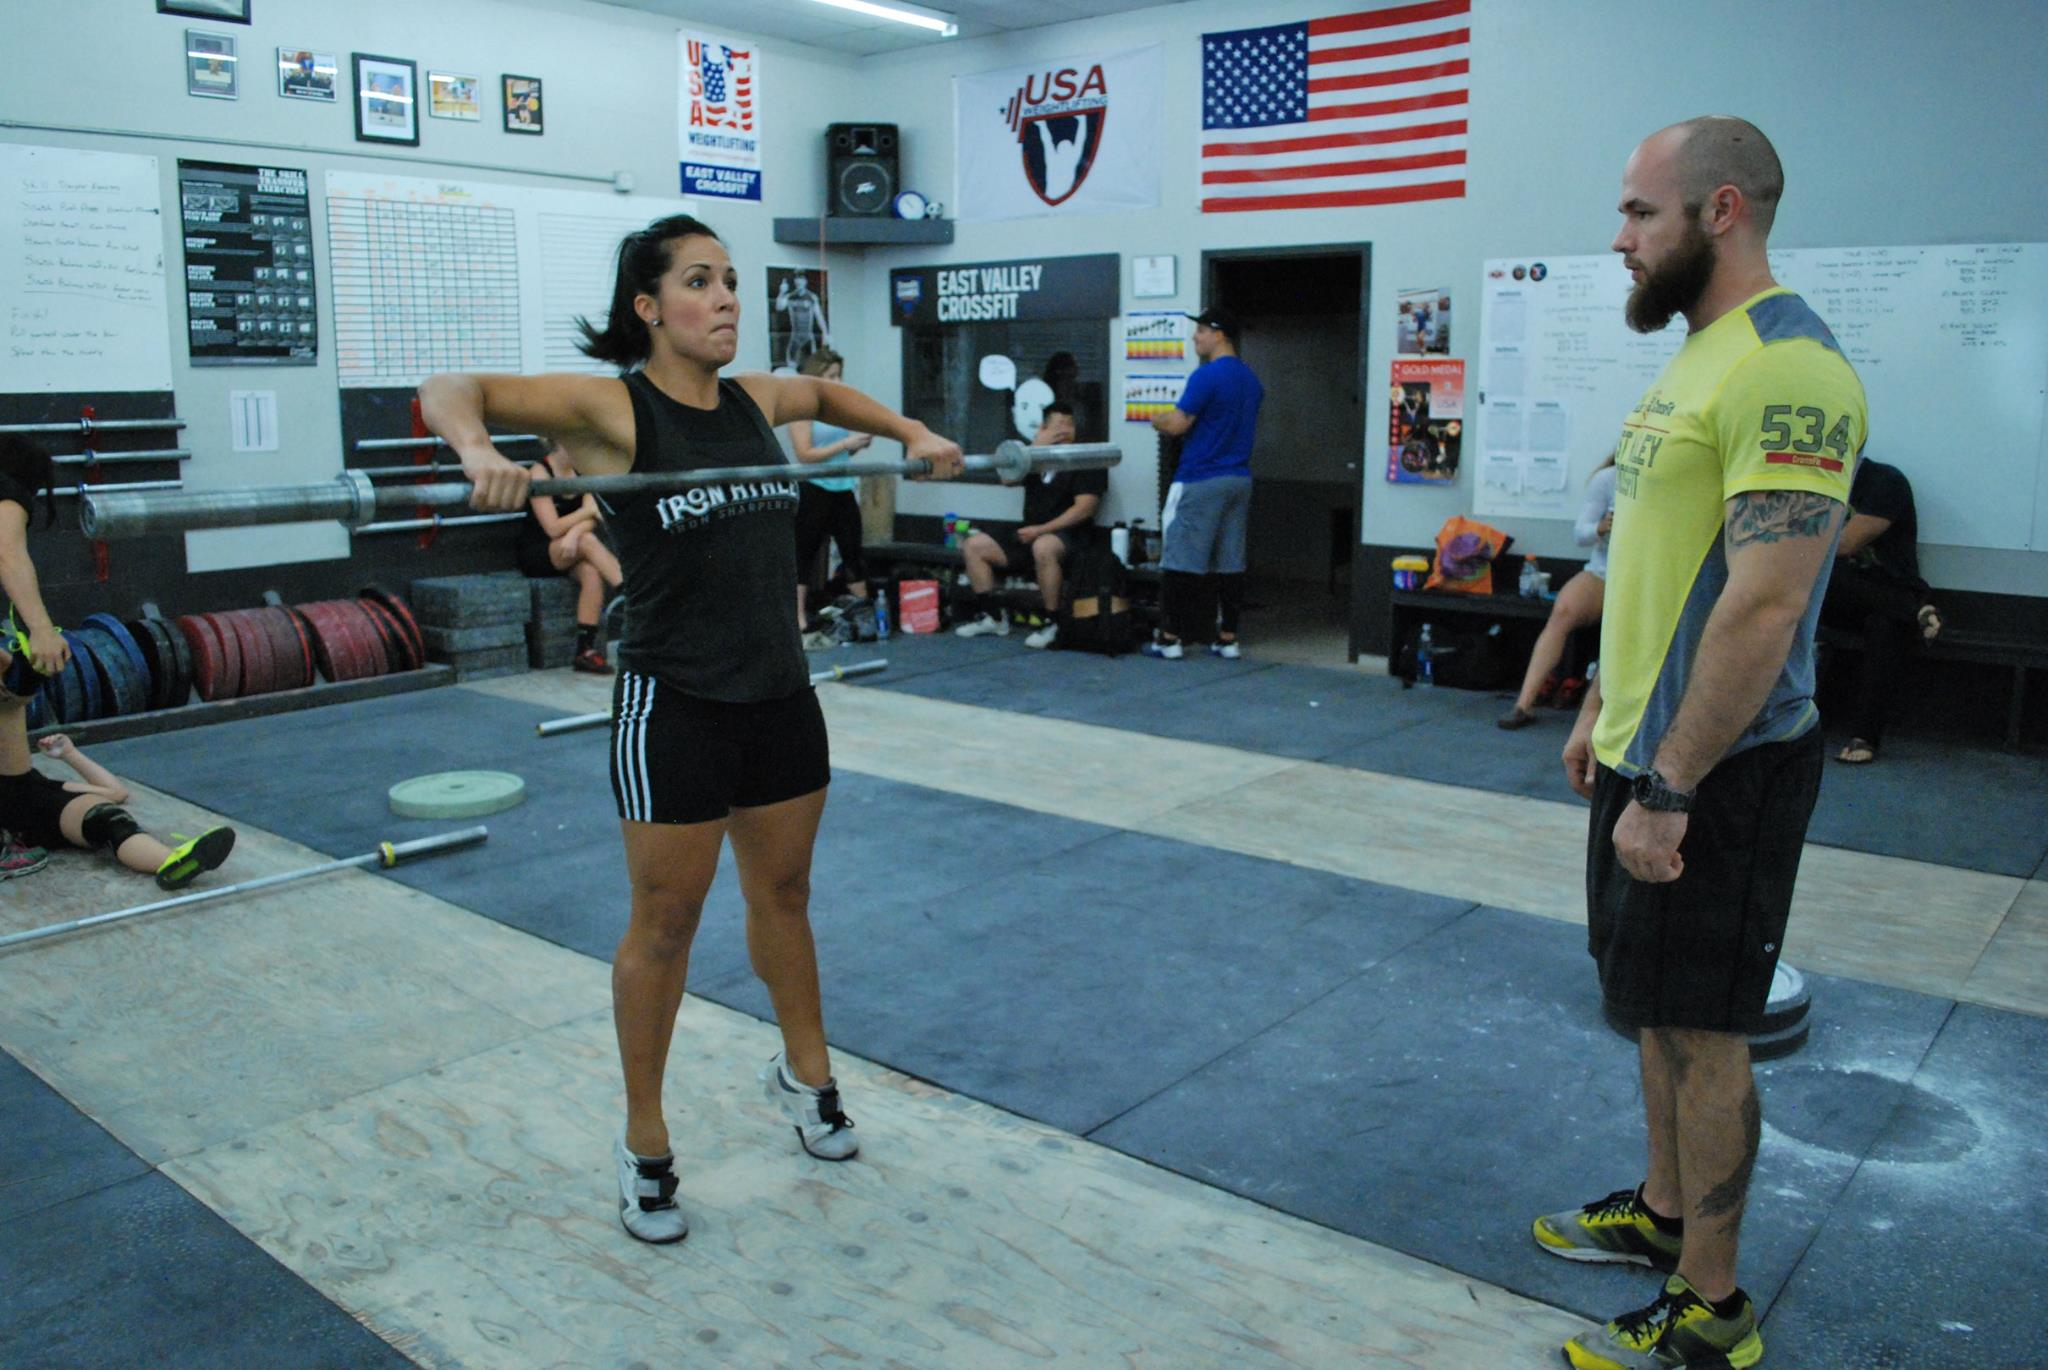 Megan Kelly Competing In The Iron Athlete Open Weightlifting Competition